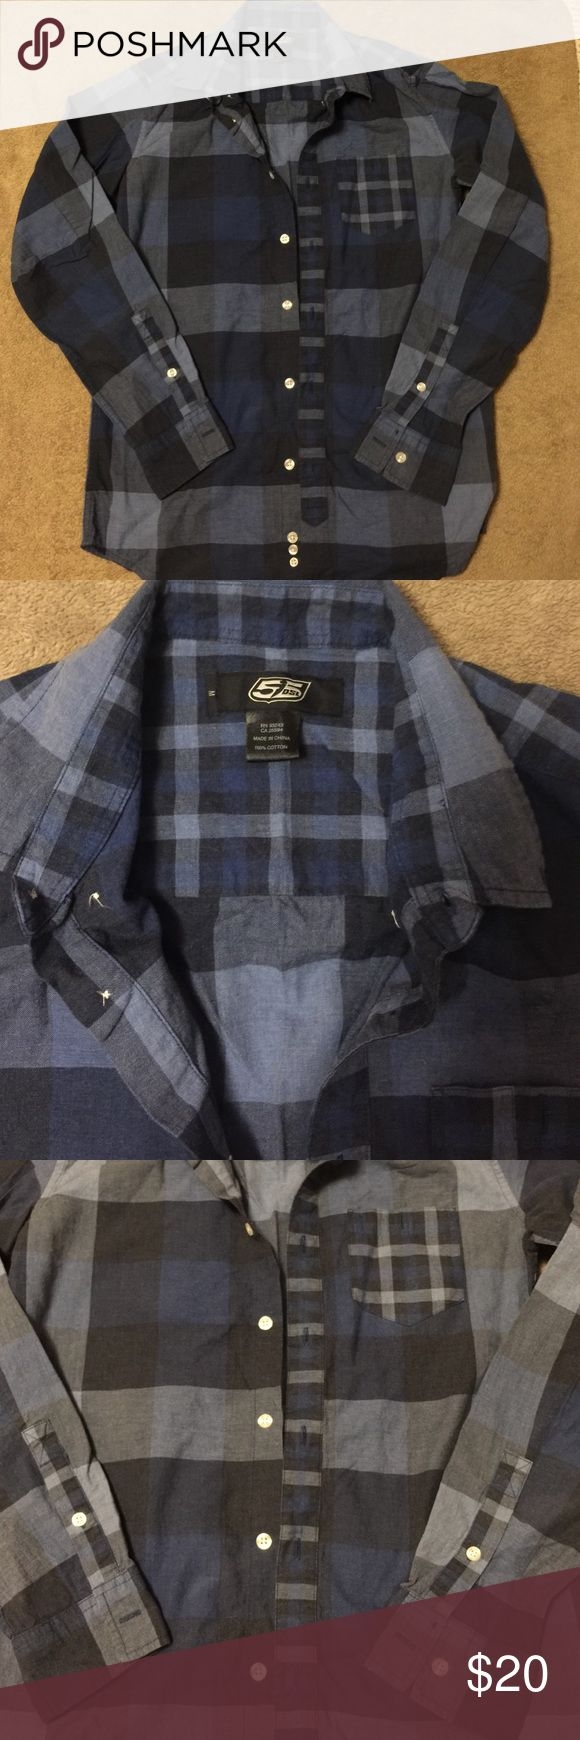 Diesel dress shirt Excellent condition and from the 55DSL DIESEL line. Diesel Shirts Casual Button Down Shirts